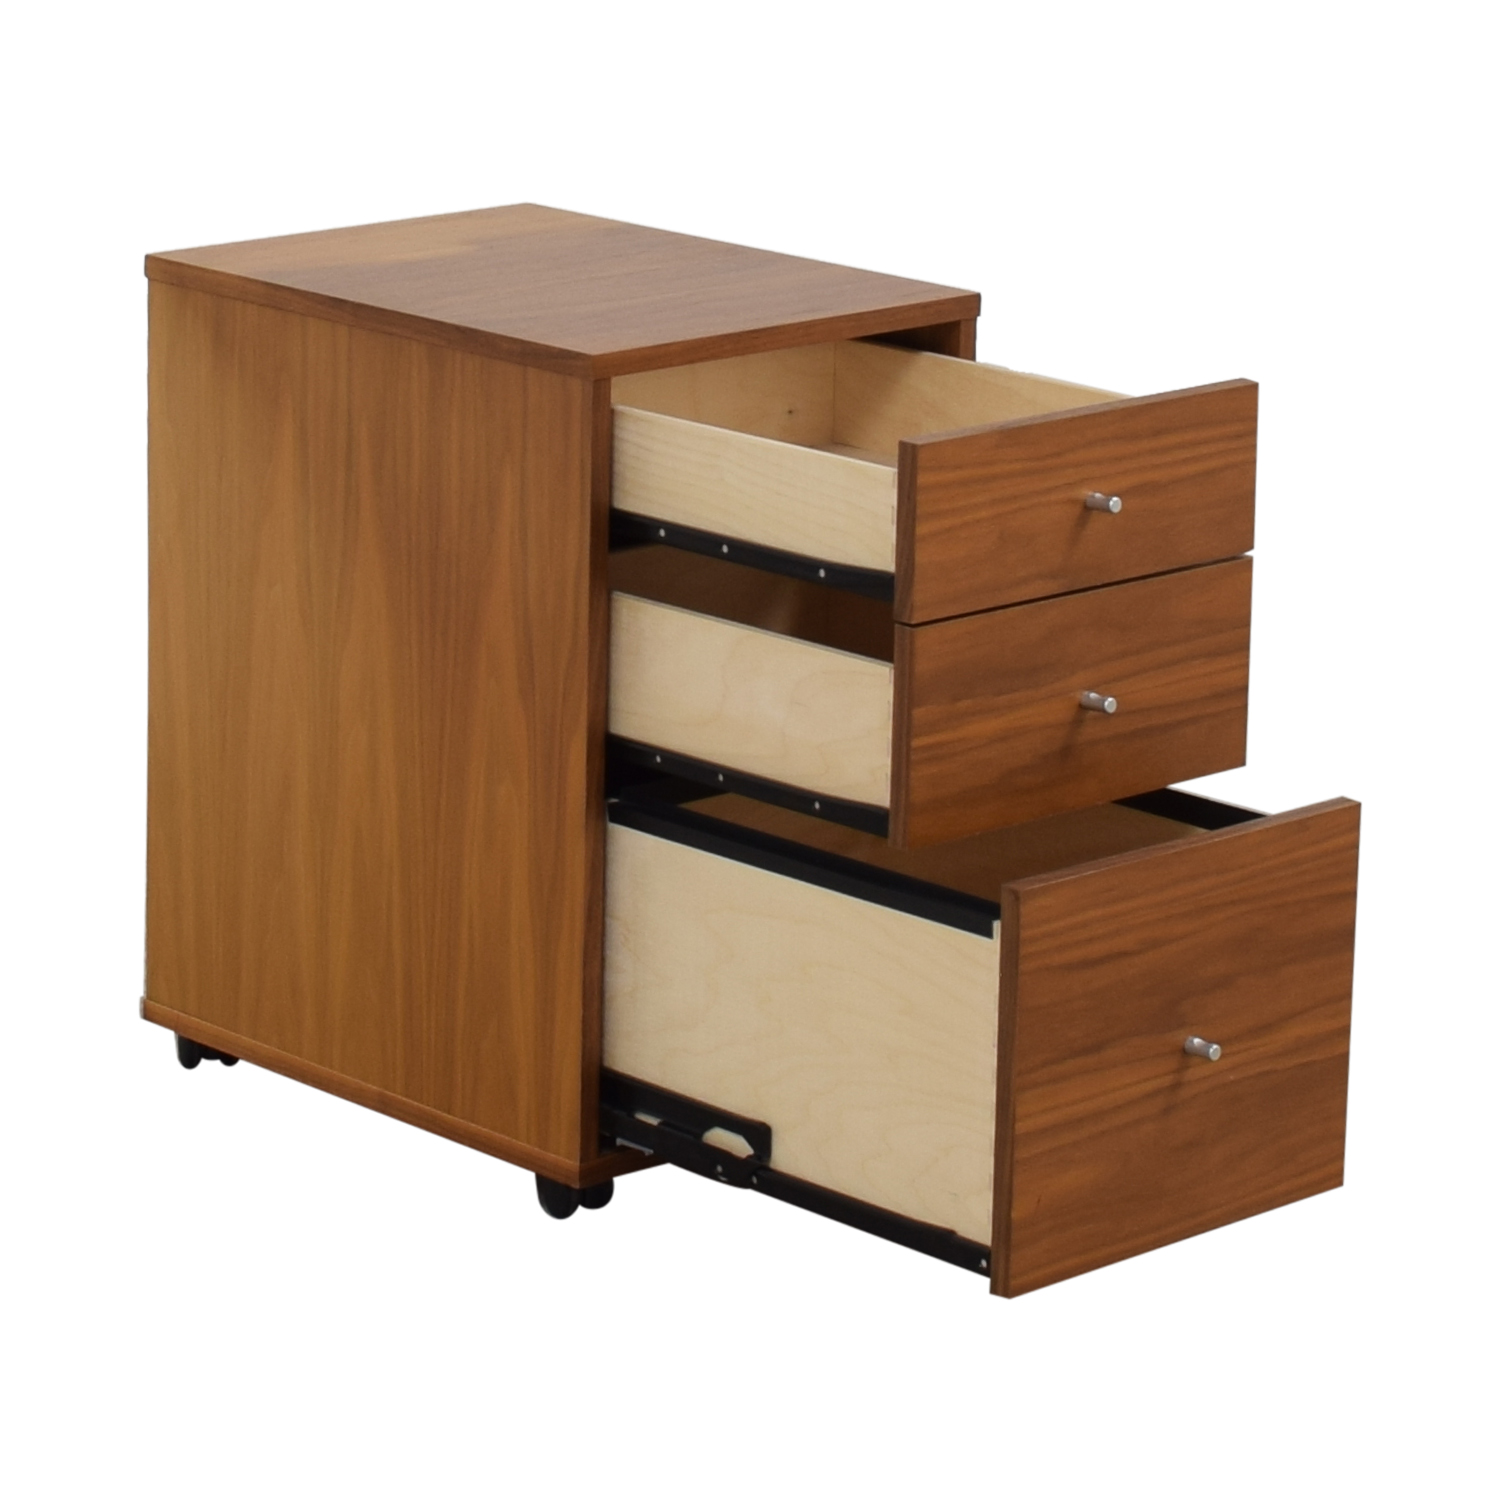 Room & Board Sequel Rolling Three-Drawer File Cabinet / Storage